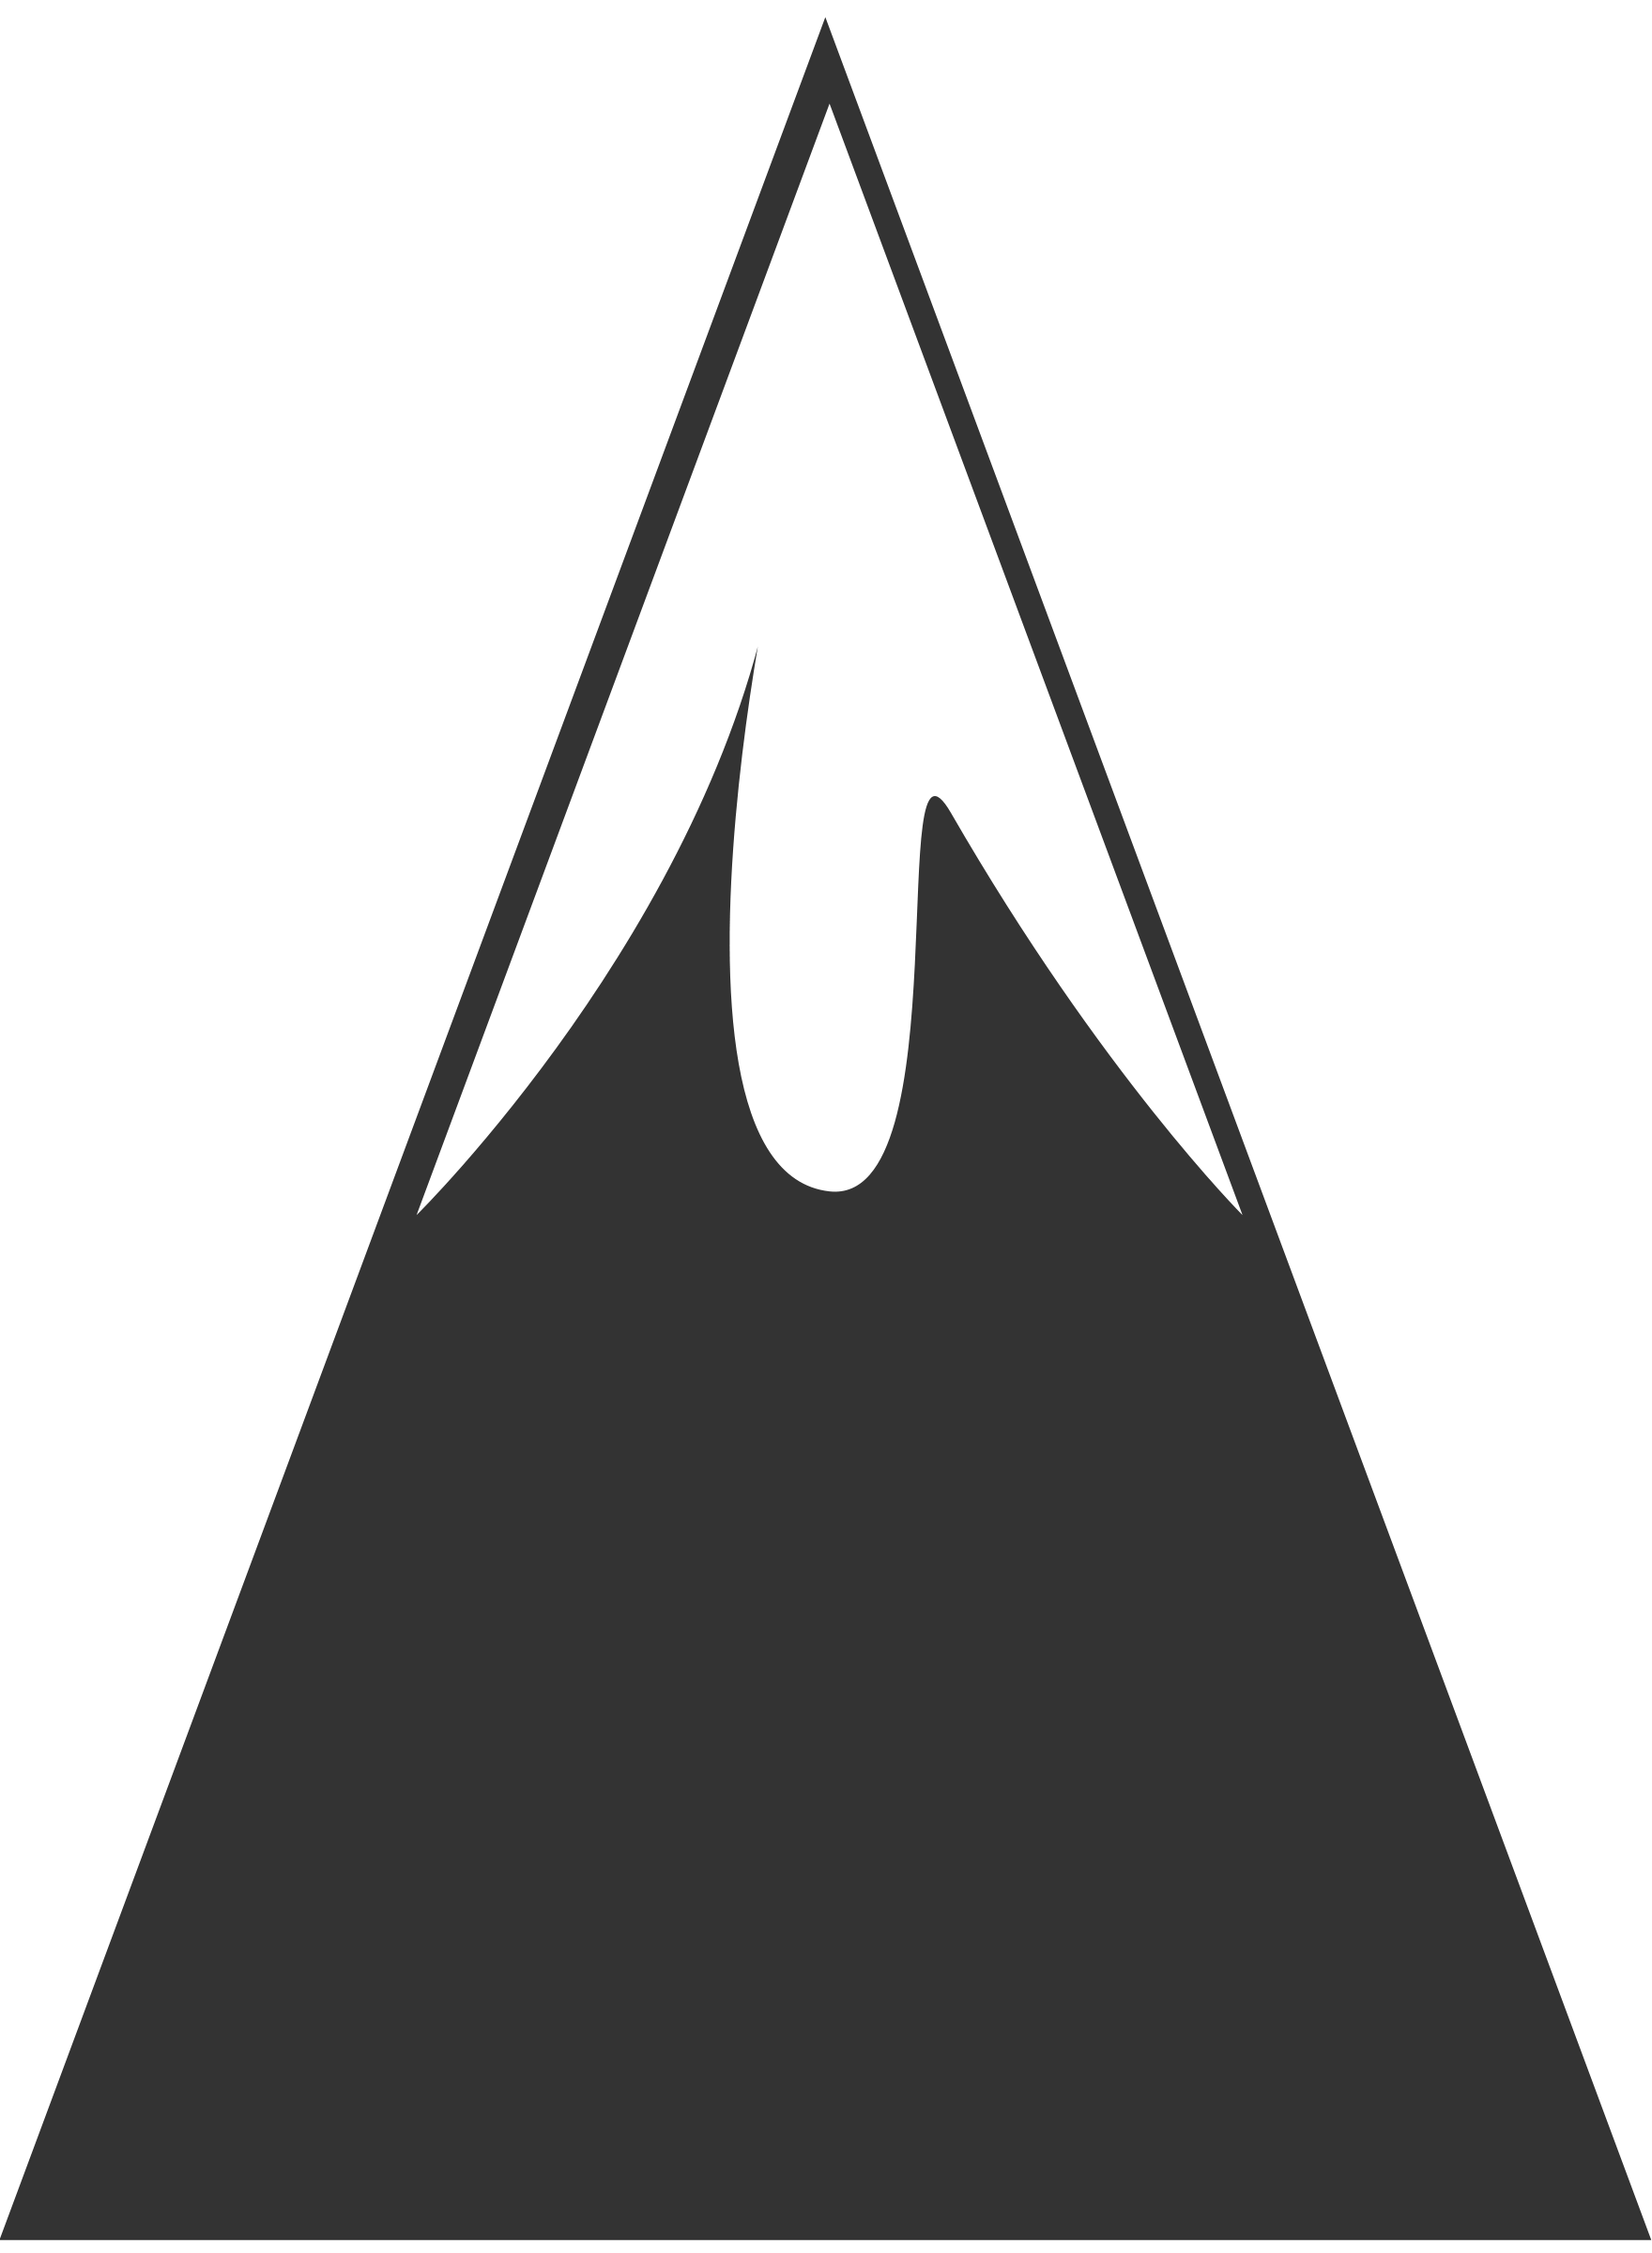 Image of mountain clipart mountains free clipartoons